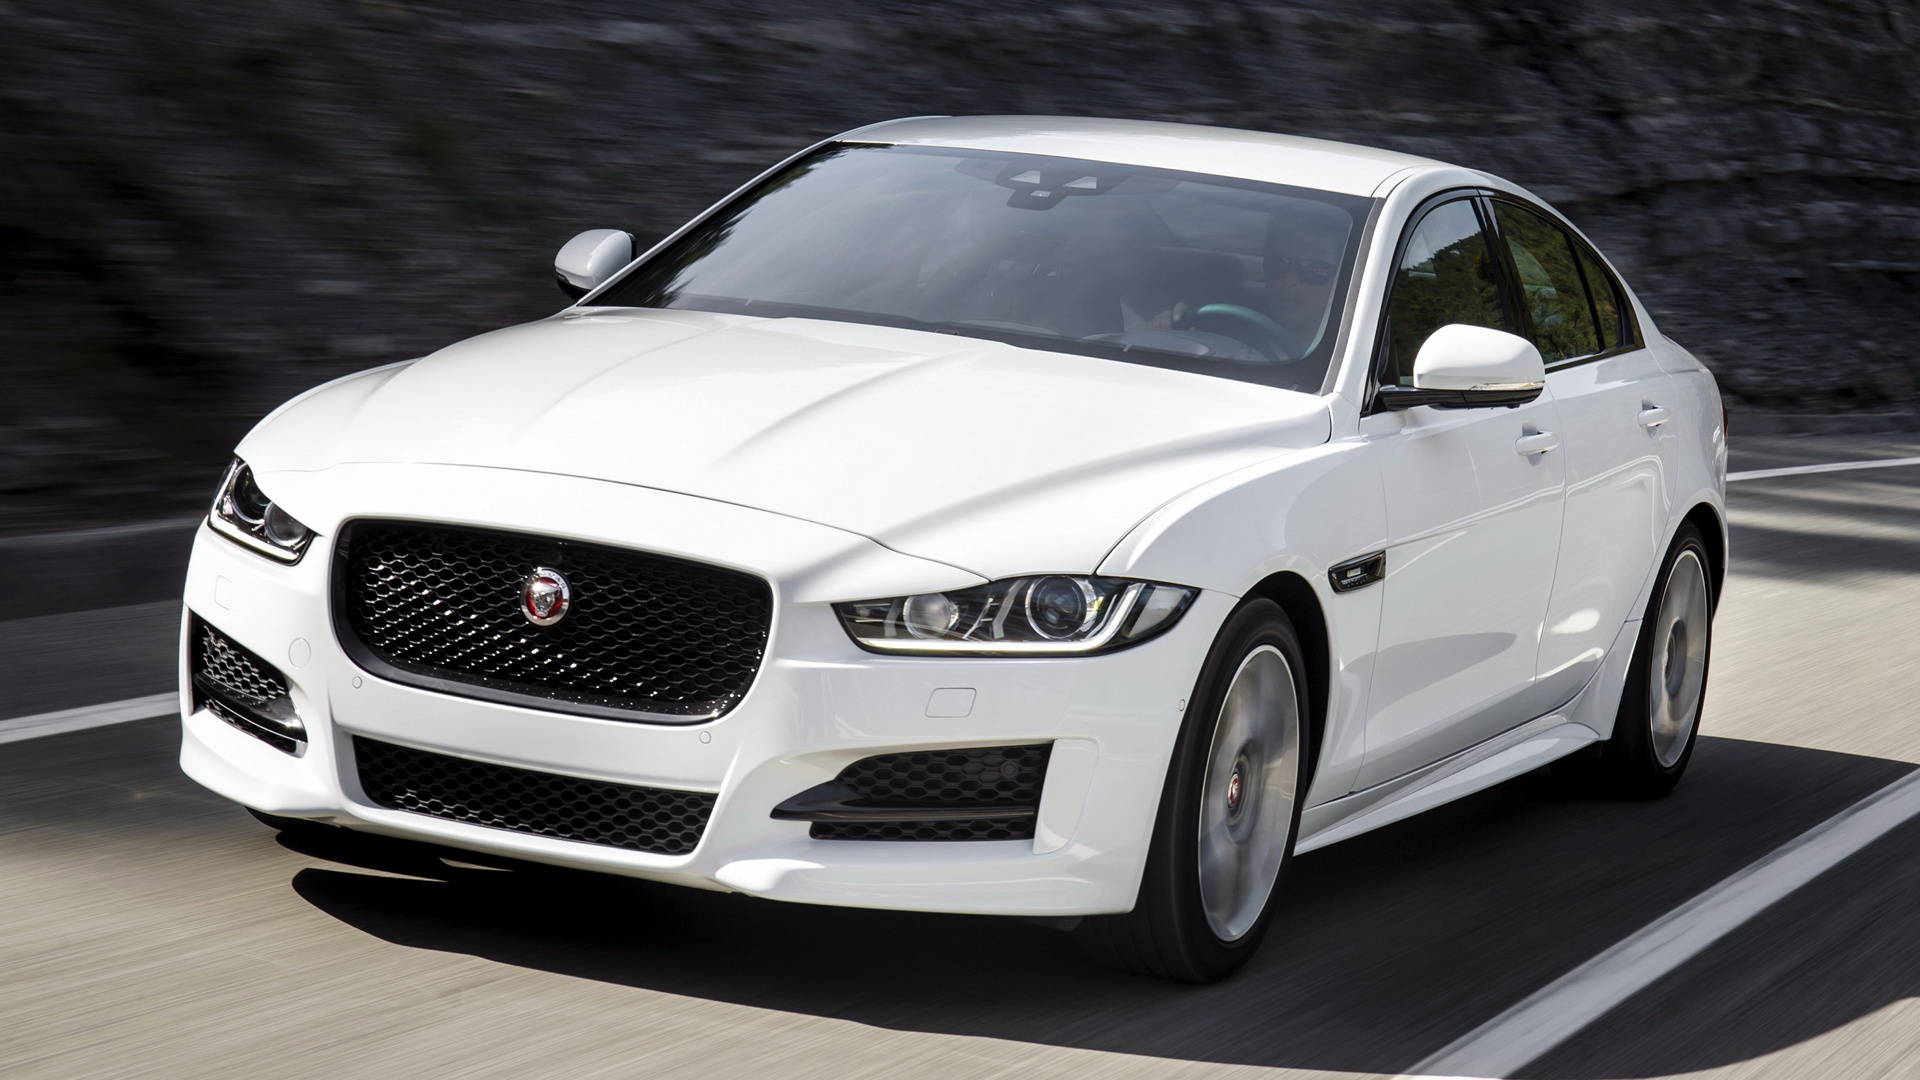 Jaguar Xe Wallpaper 1920x1080 Download Hd Wallpaper Wallpapertip